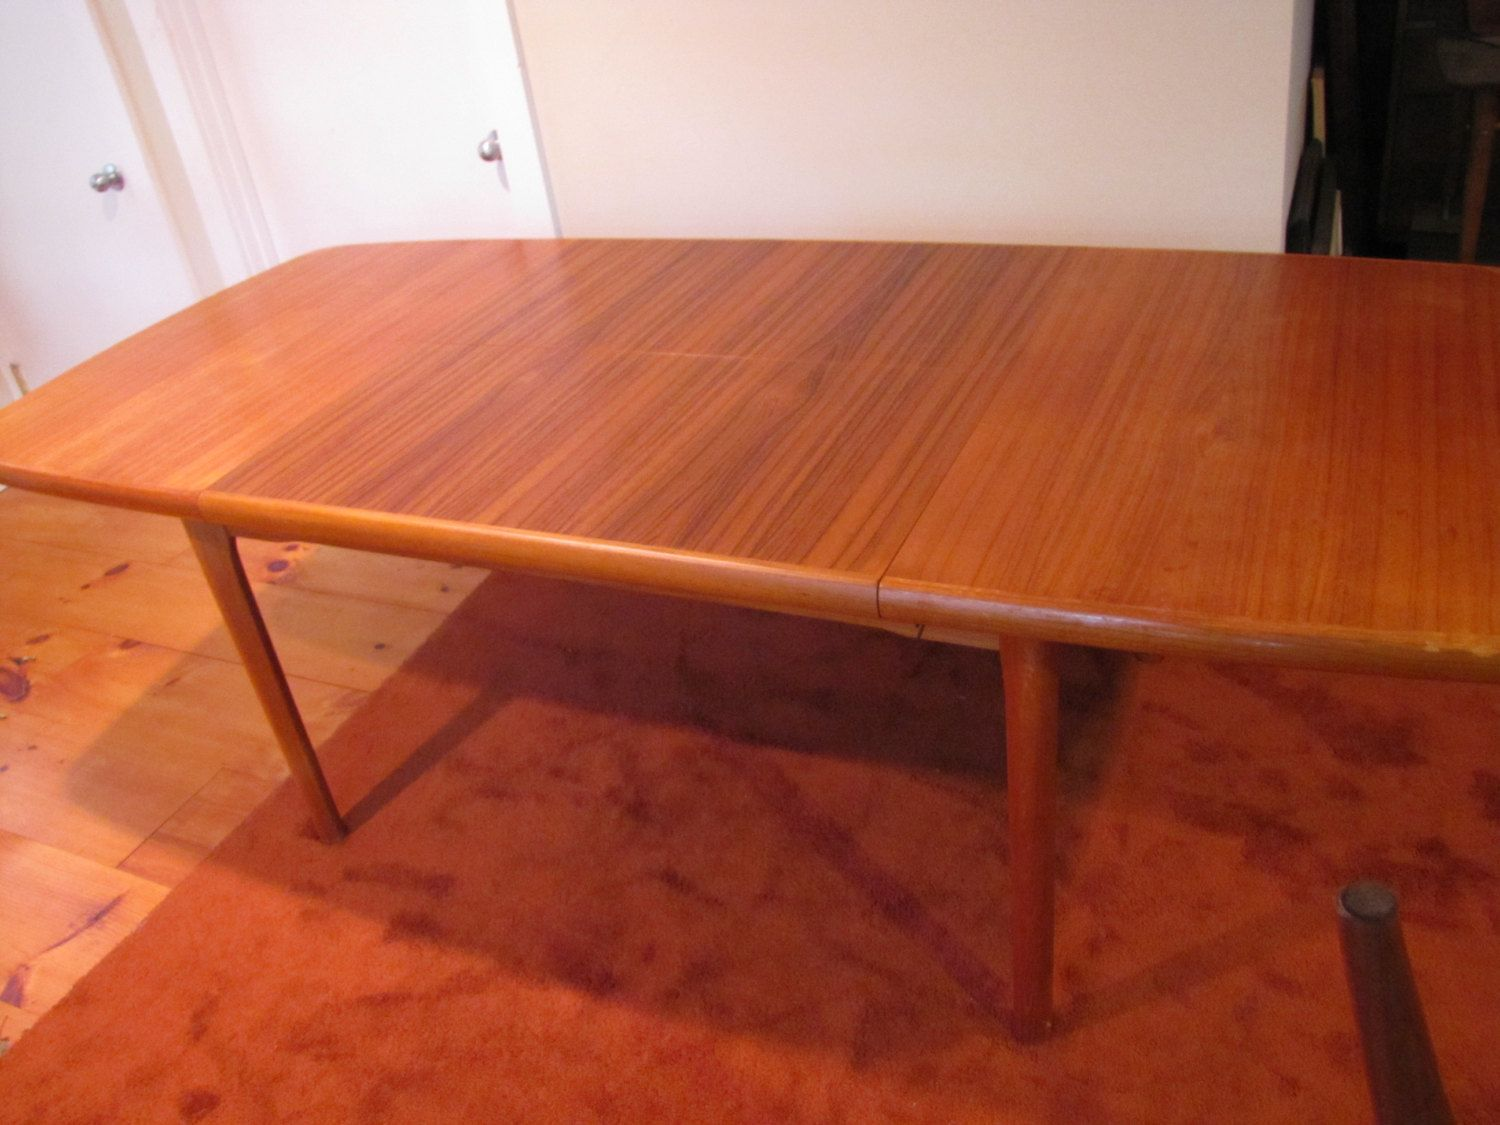 Teak Dining Table, Danish Modern Dining Table, AM 56, Made In Denmark,  Extending Dining Table, 92